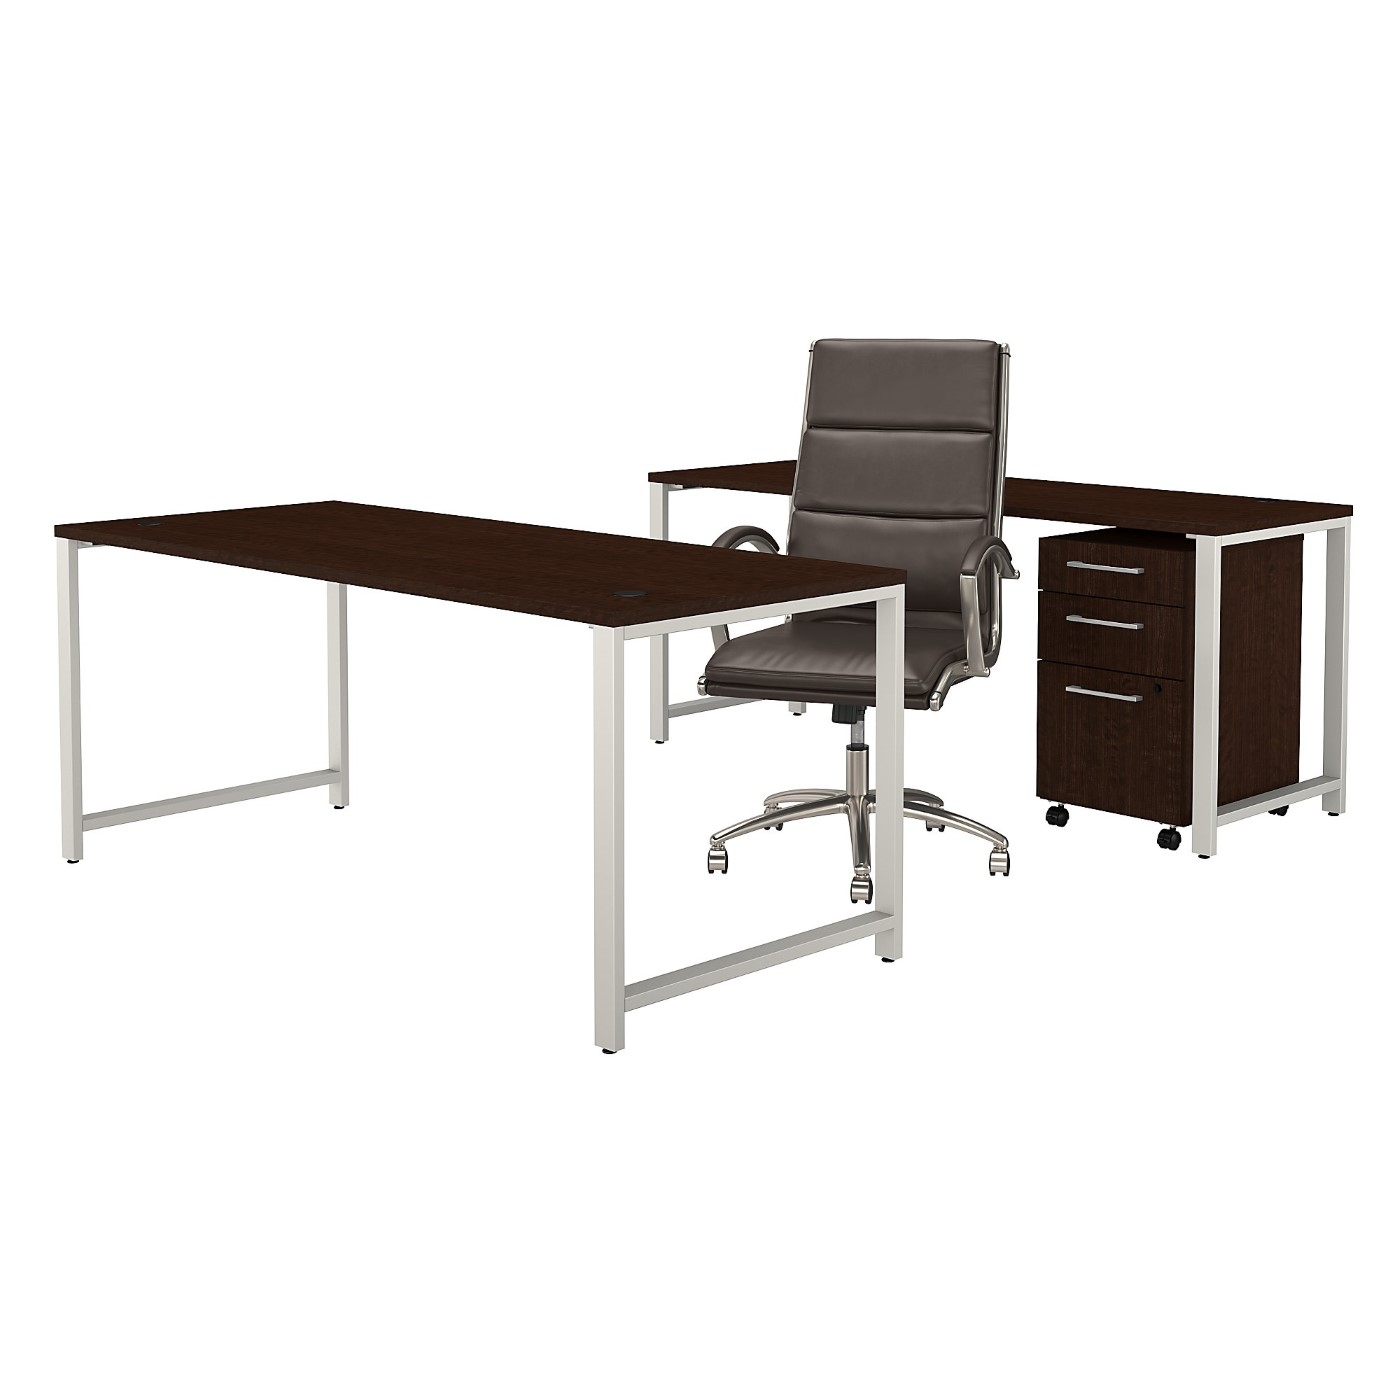 BUSH BUSINESS FURNITURE 400 SERIES 72W TABLE DESK SET WITH OFFICE CHAIR AND MOBILE FILE CABINET. FREE SHIPPING SALE DEDUCT 10% MORE ENTER '10percent' IN COUPON CODE BOX WHILE CHECKING OUT.